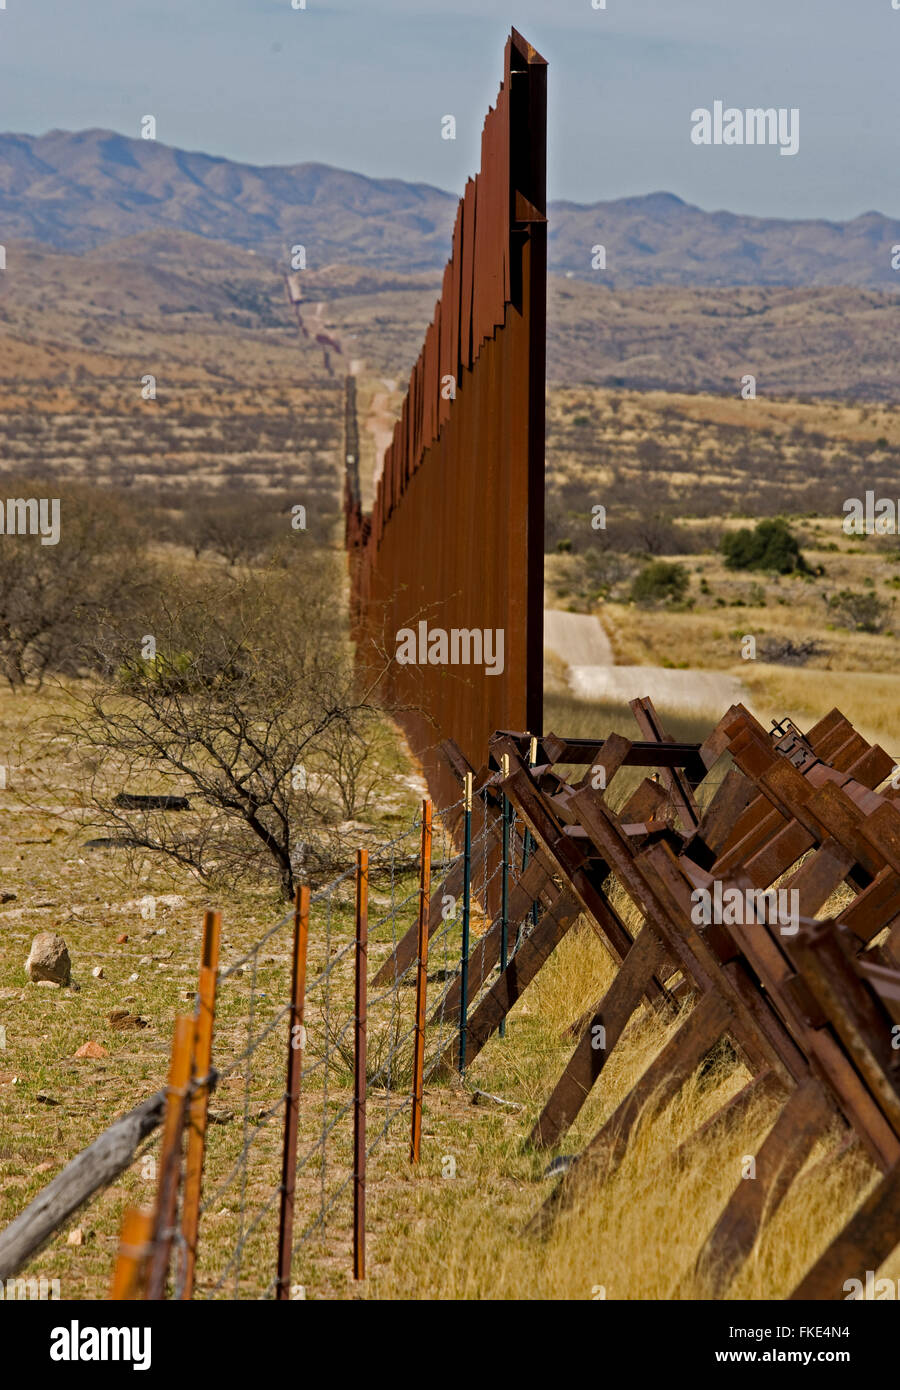 us fence in the border of mexico essay Donald trump has set his plan for a us-mexico border wall in motion but who will end up paying for it.